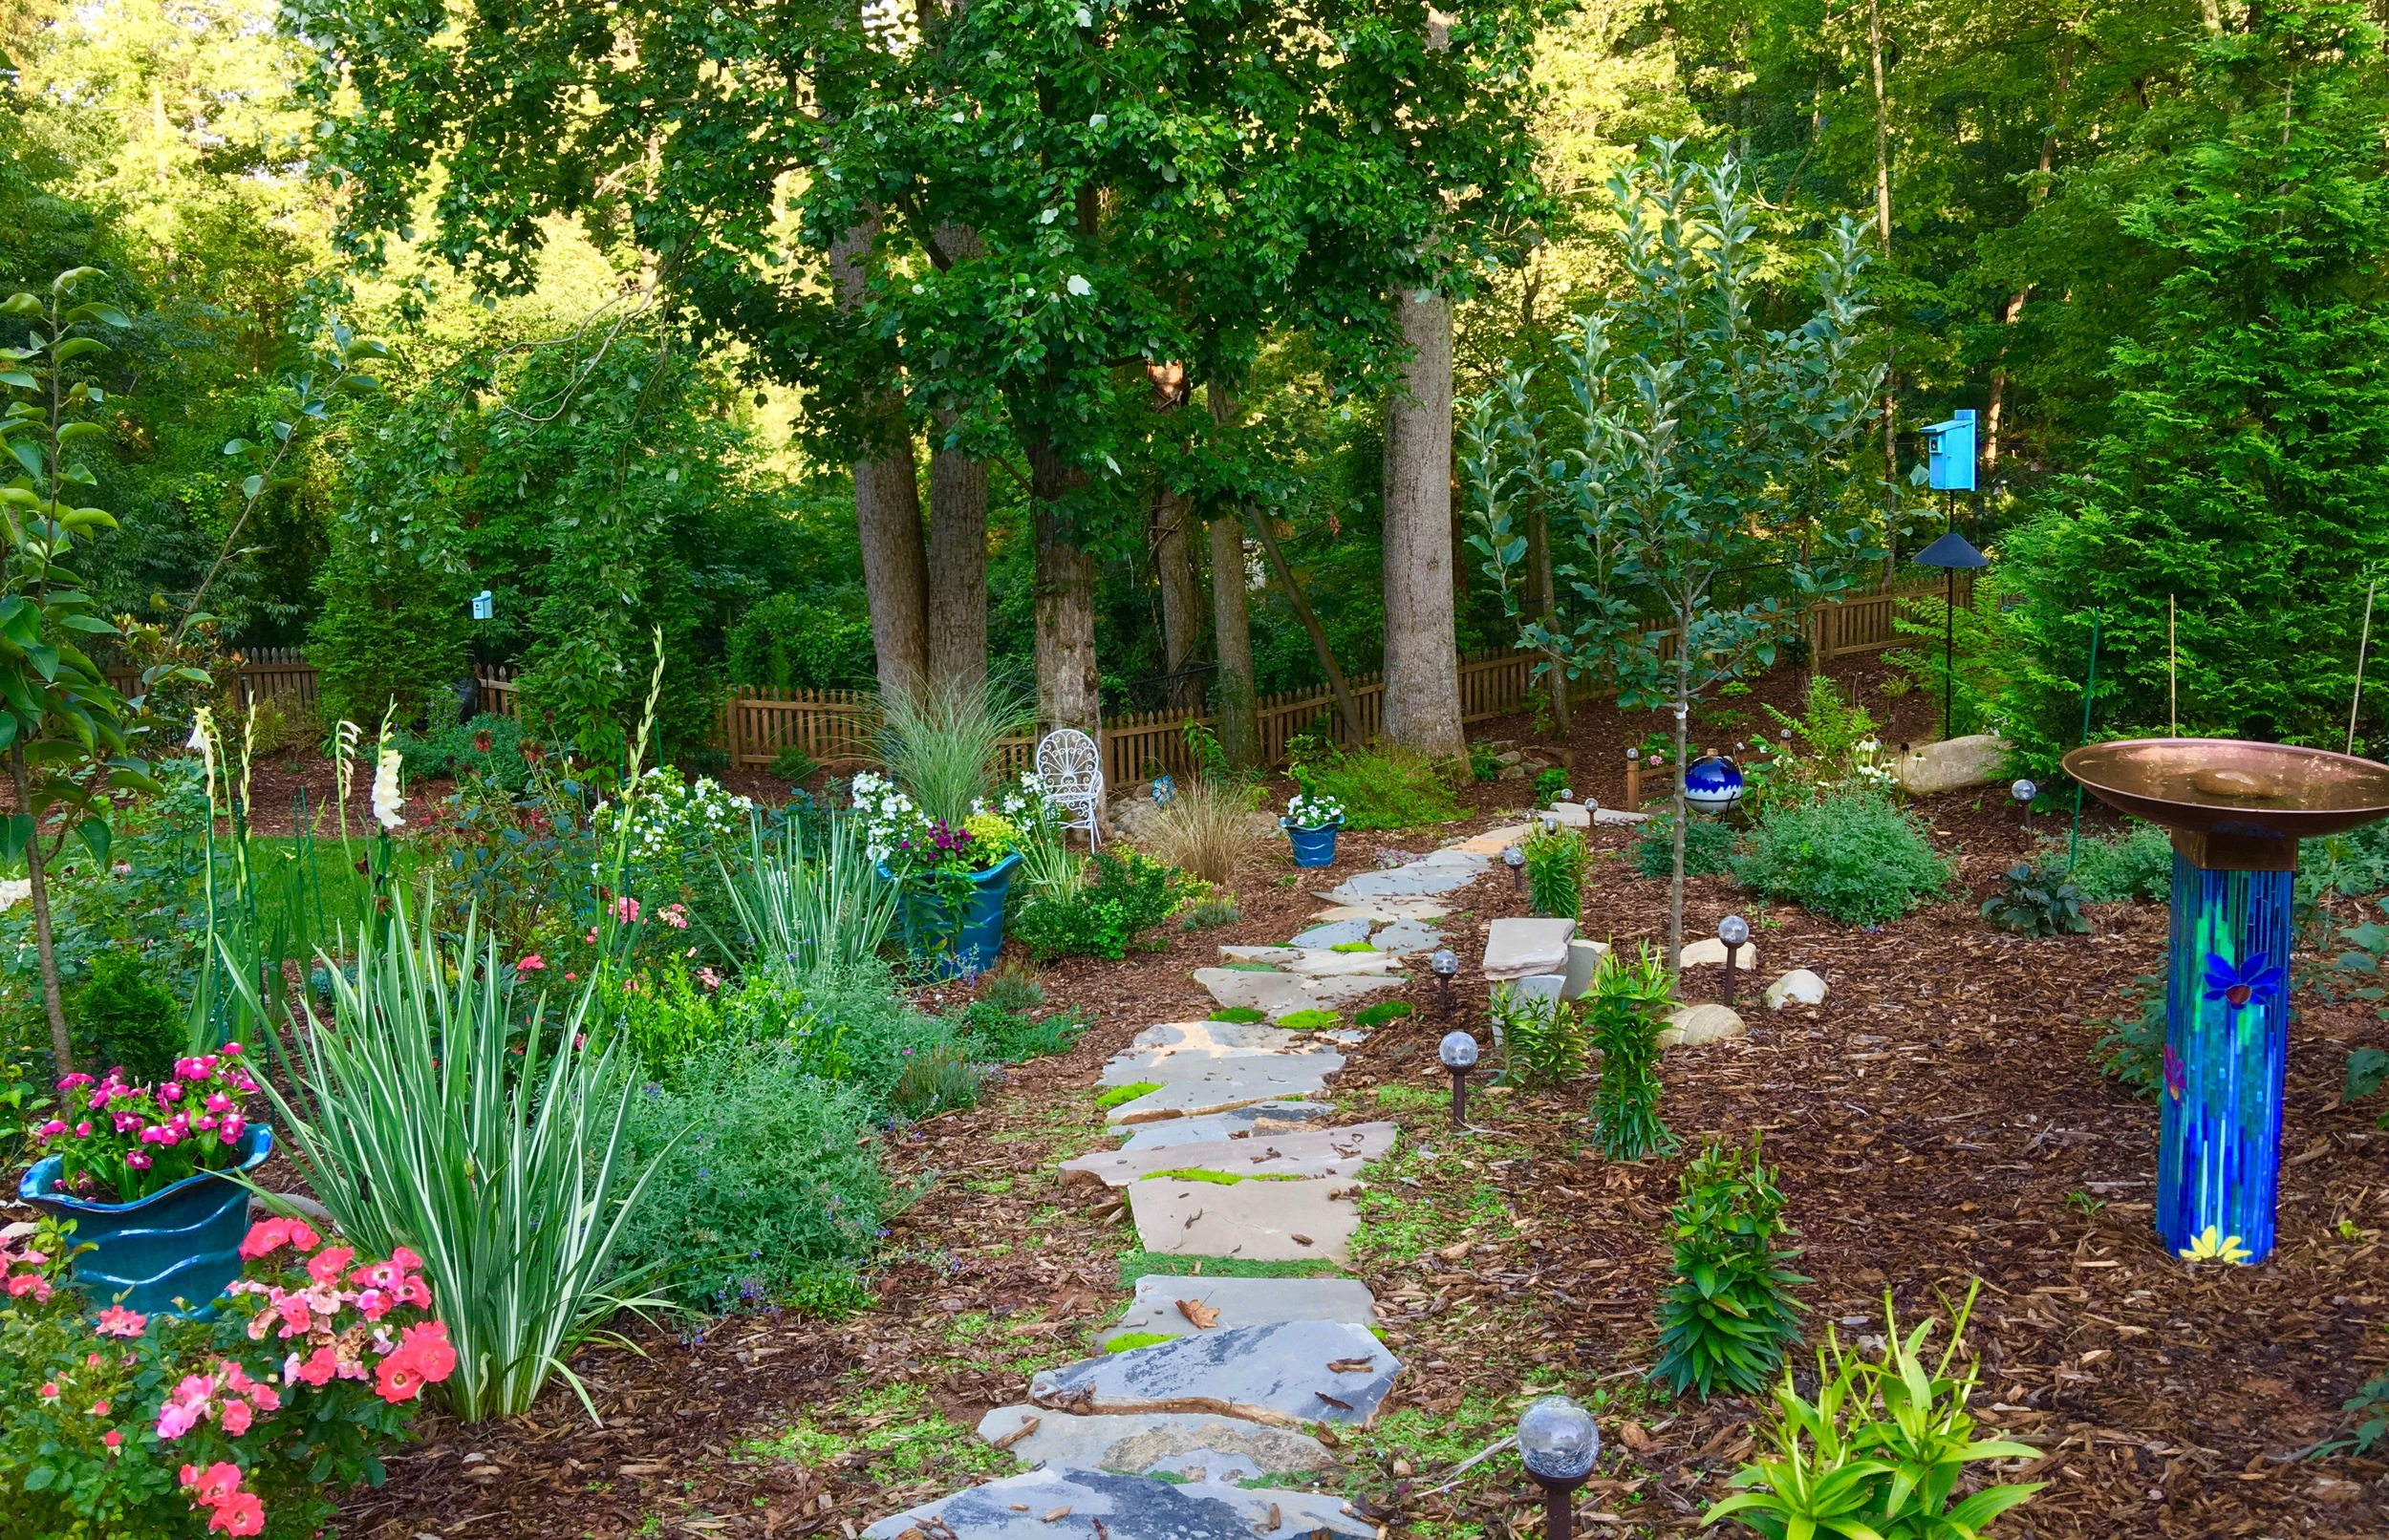 """Becky created paths that take her to her """"different gardens."""" She's created a total of 8 spaces in the garden, including a secret garden."""